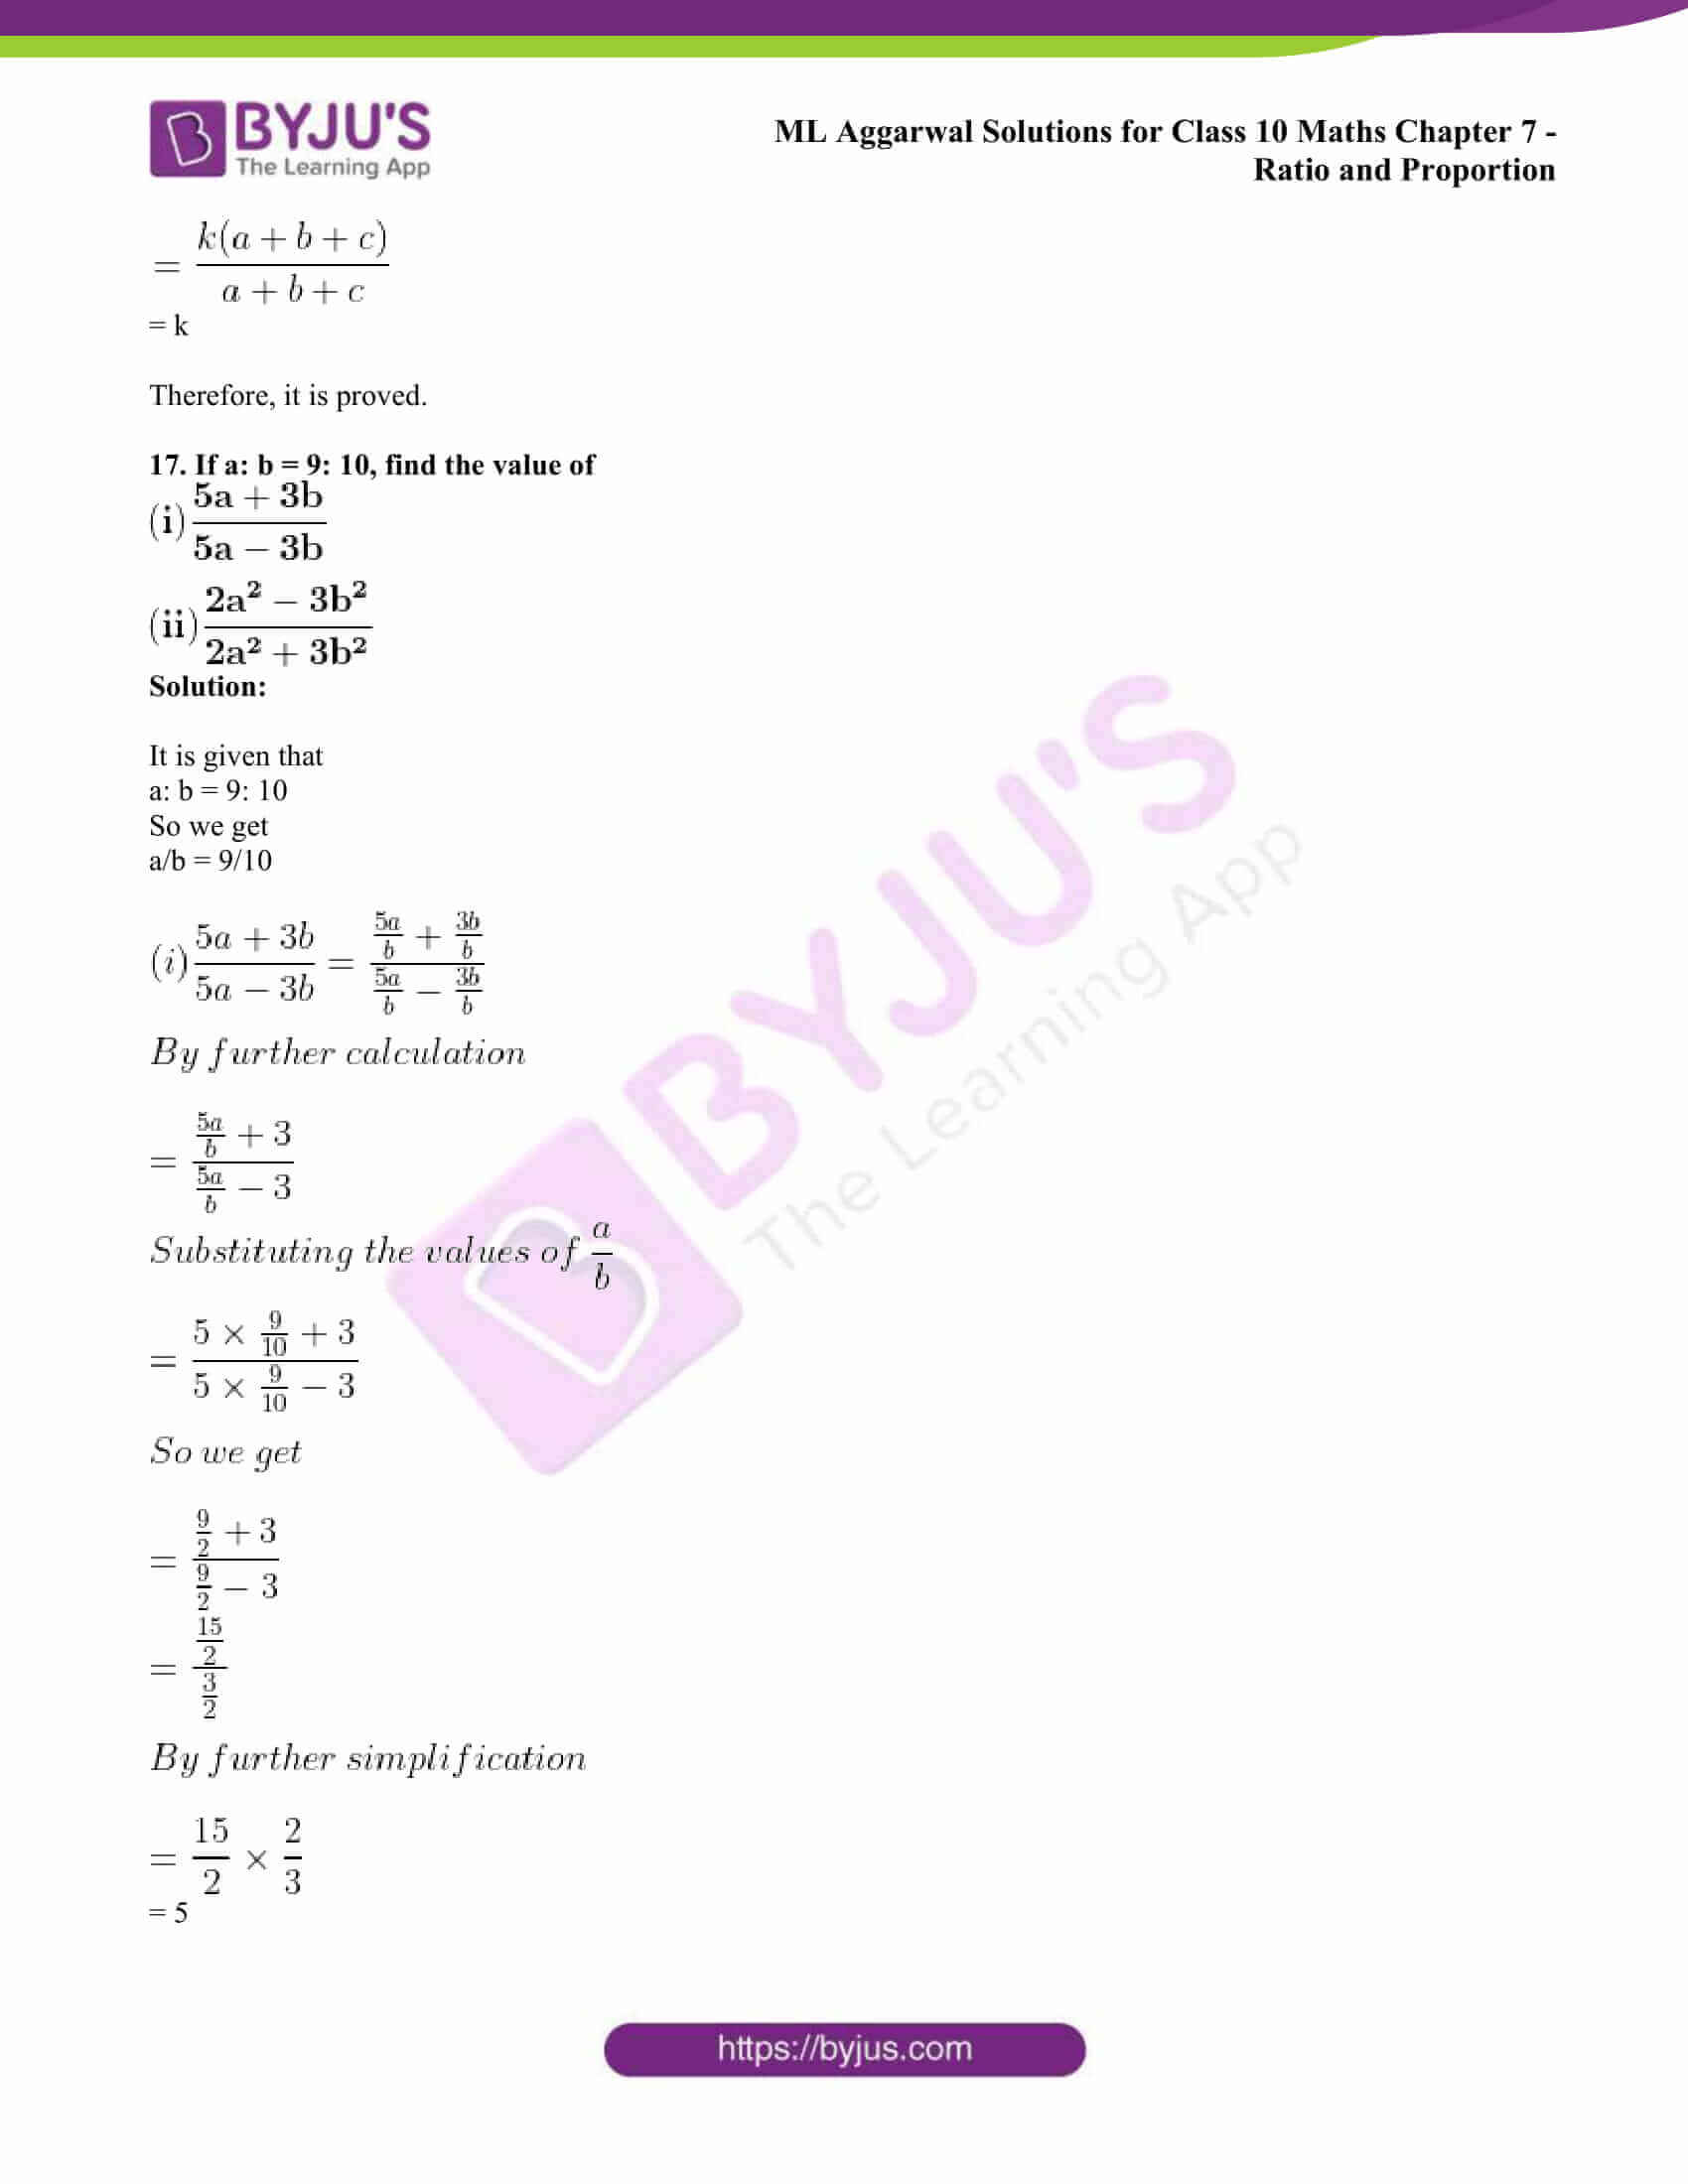 ml aggarwal solutions class 10 maths chapter 7 80